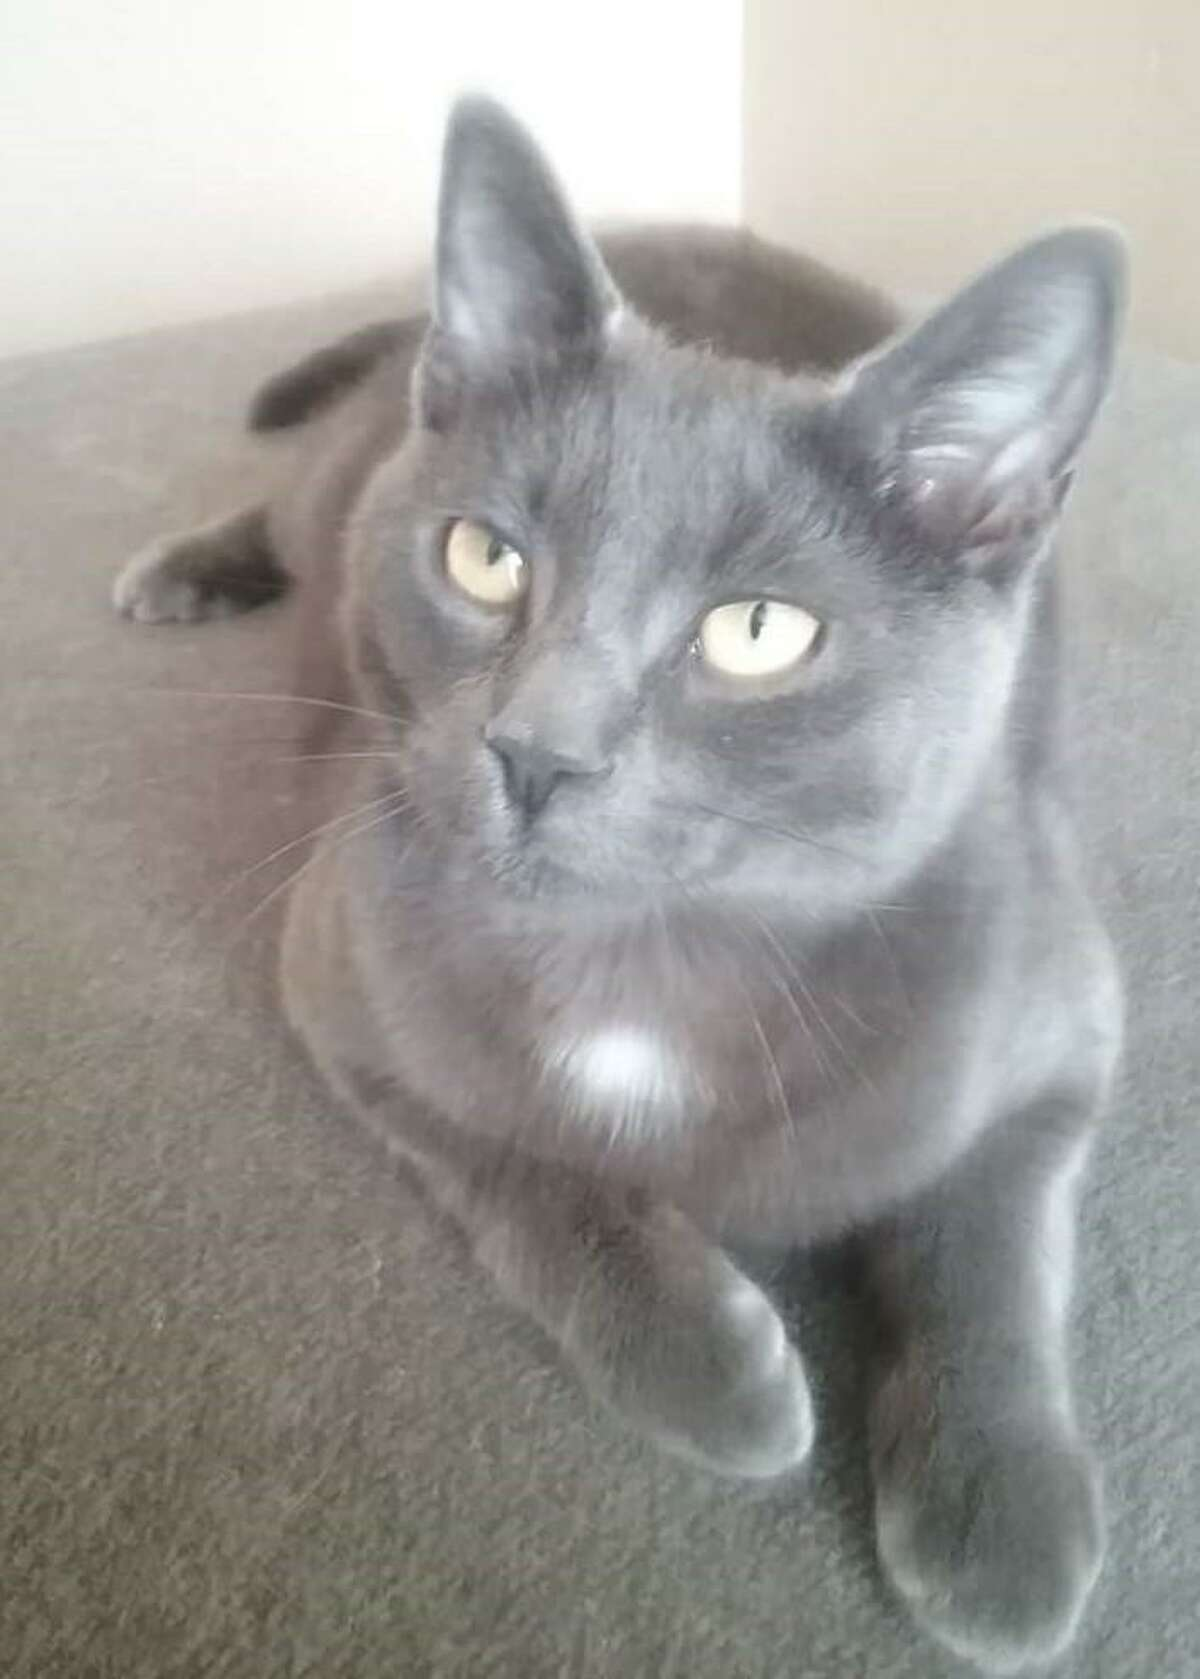 Attorney Thomas Cherry of Cheshire is currently the advocate in a case involving this cat named